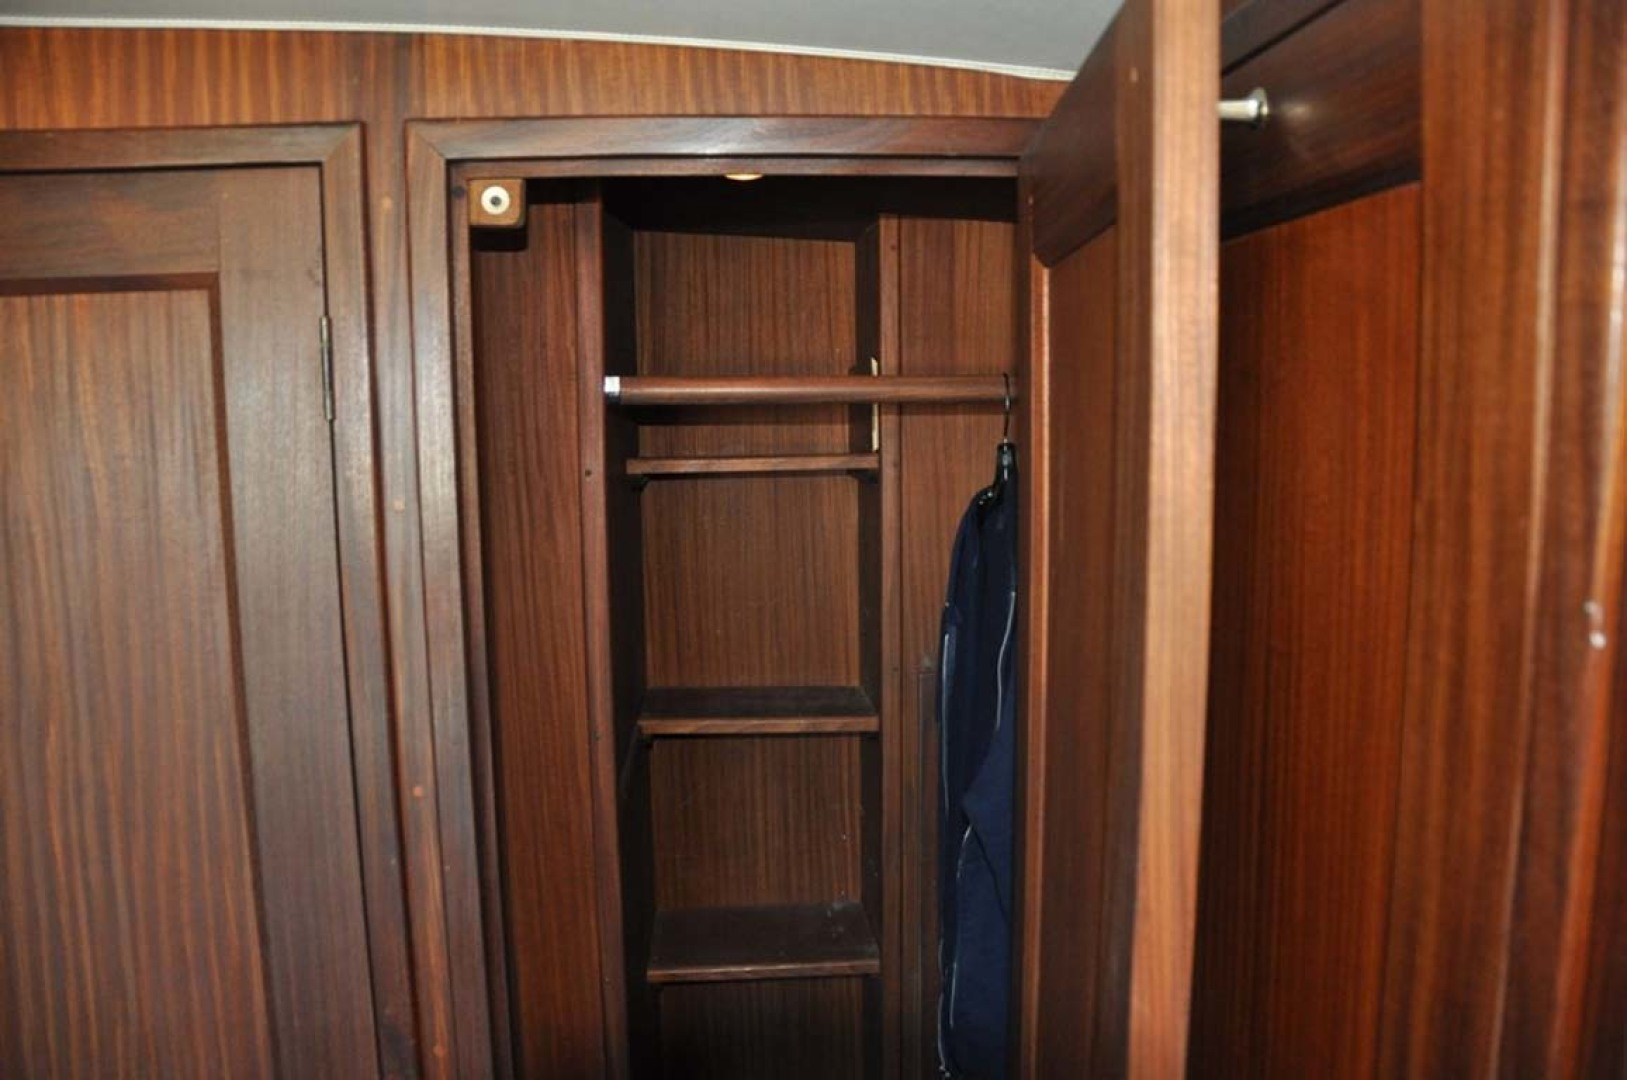 Hatteras-Cockpit Motoryacht 1983-Southern Cross Essex-Connecticut-United States-Master Hanging Locker-1155695 | Thumbnail